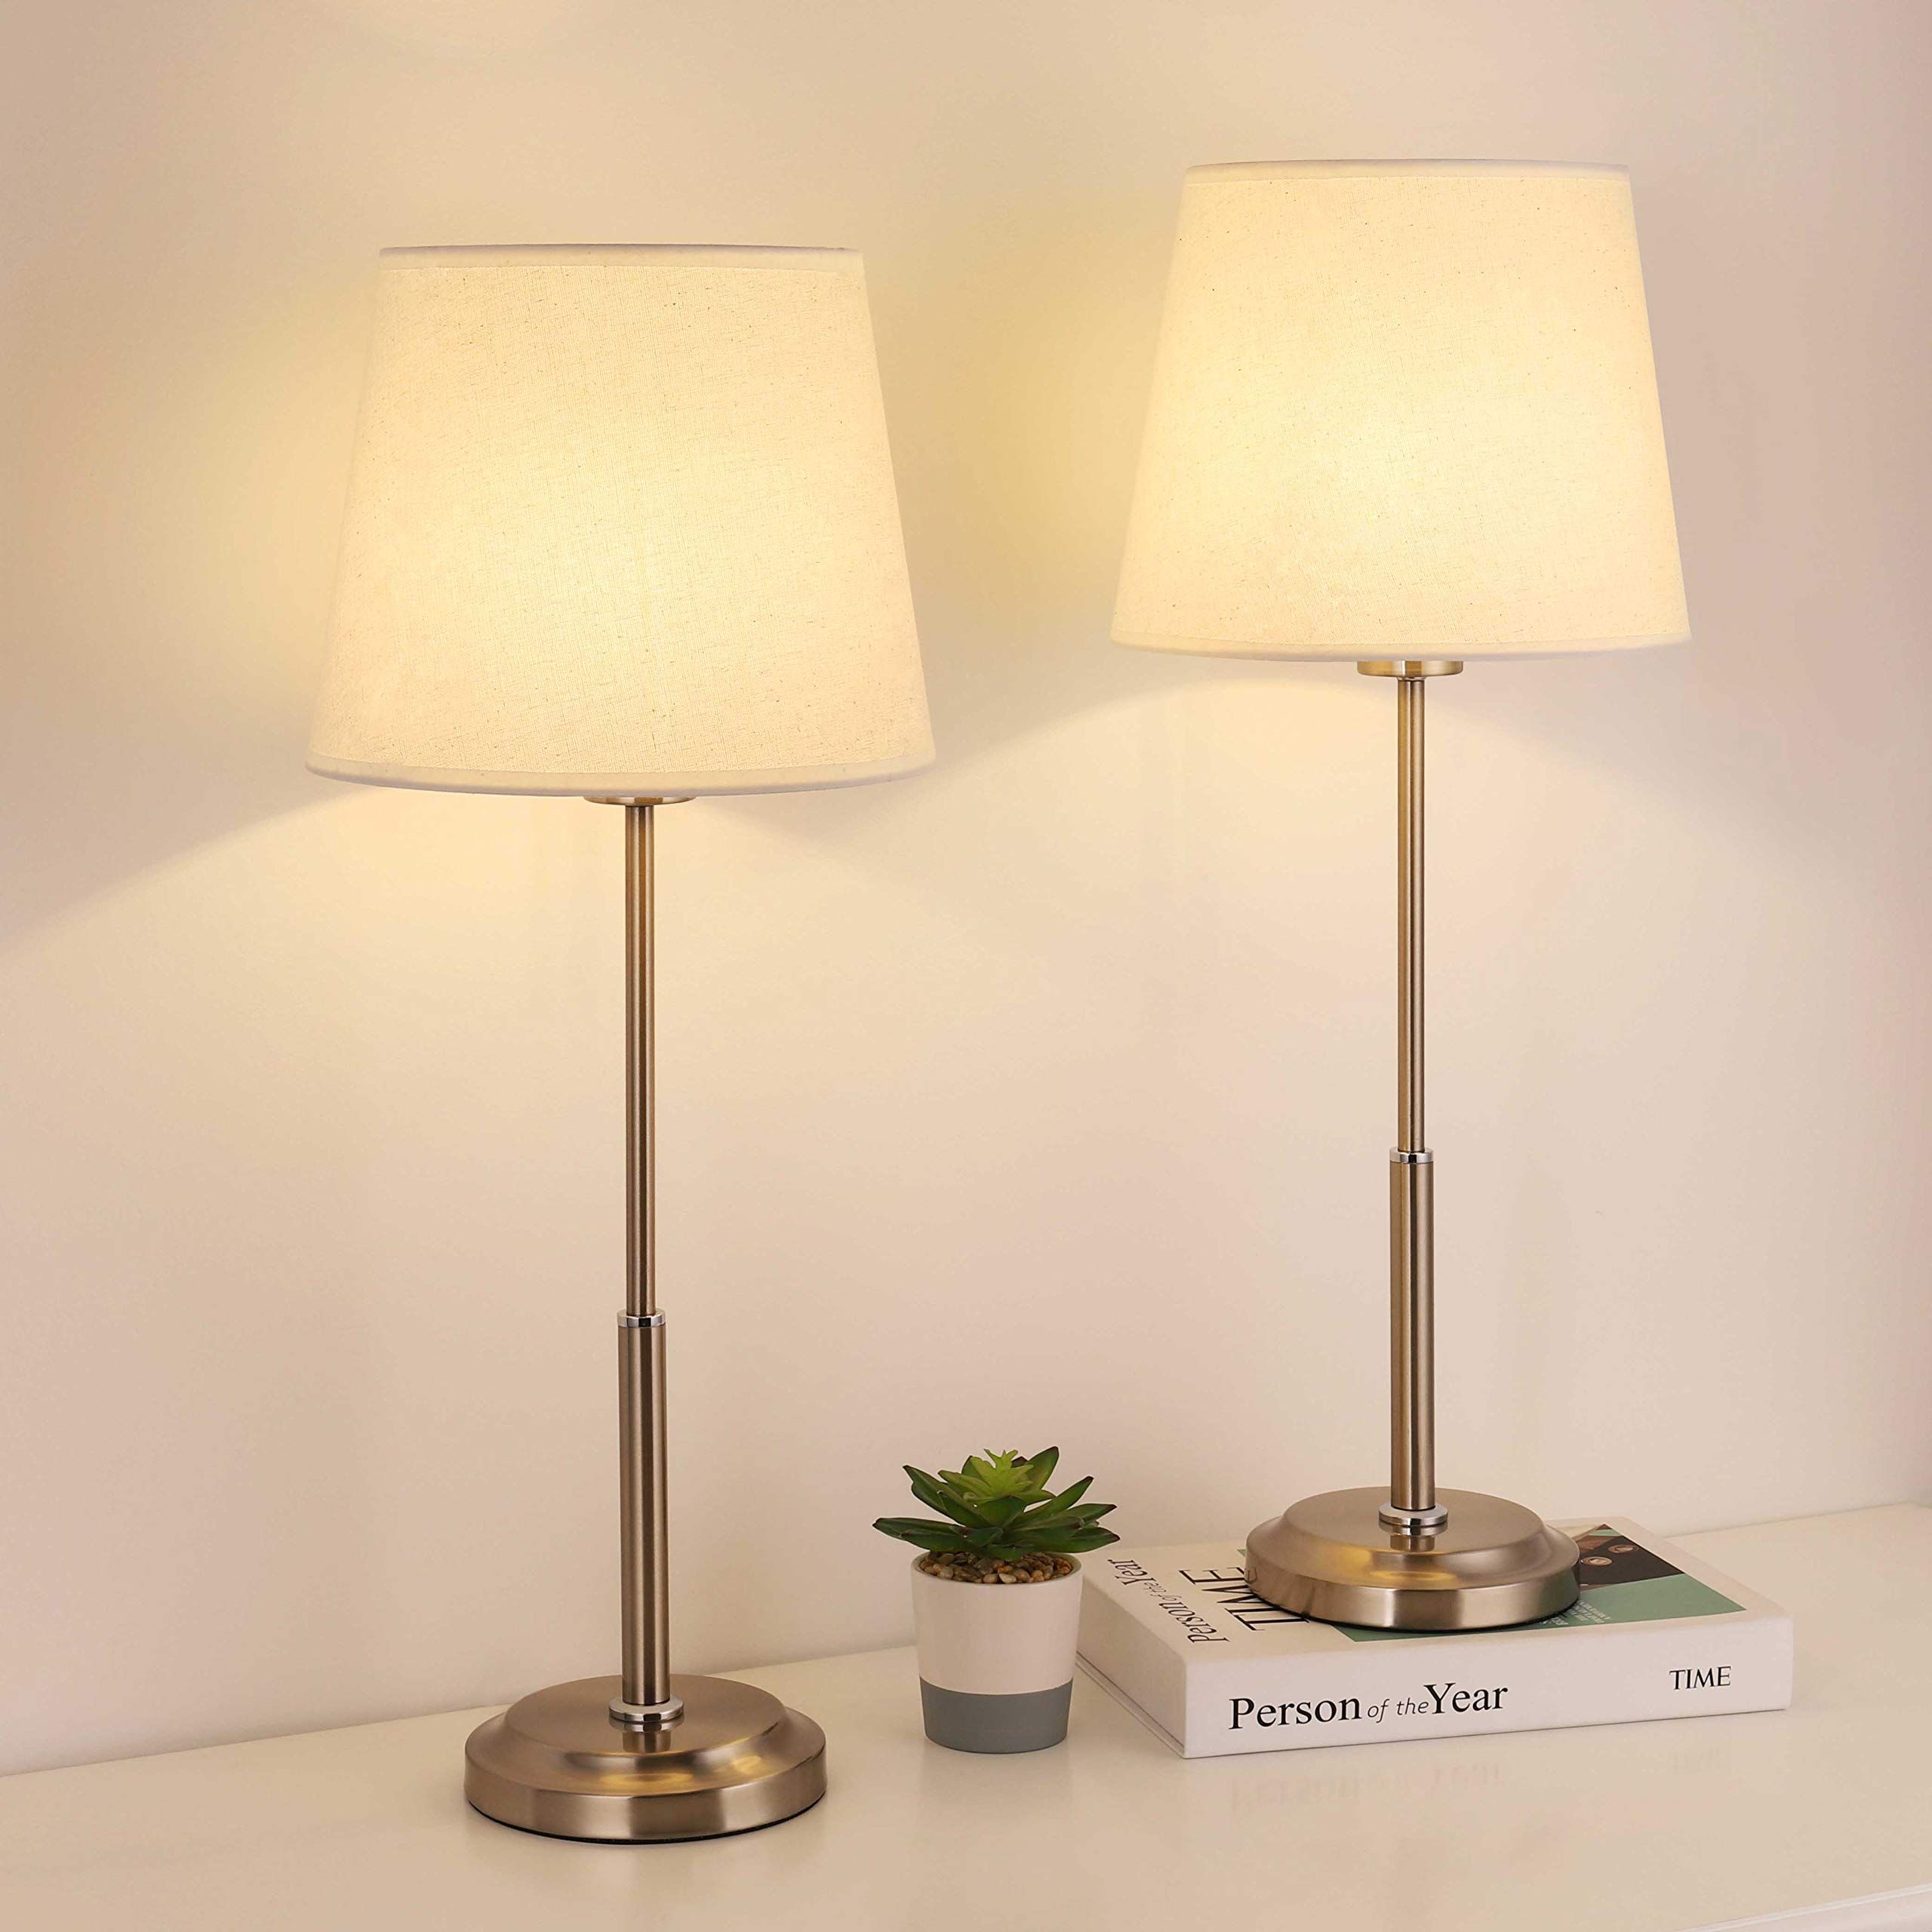 Bedside Table Lamps Set Of 2 Nightstand Desk Lamp Set With Fabric Lampshade And Brushed Nickel Metal Base For Be In 2020 Bedside Table Lamps Table Lamp Sets Table Lamp #table #lamp #sets #living #room